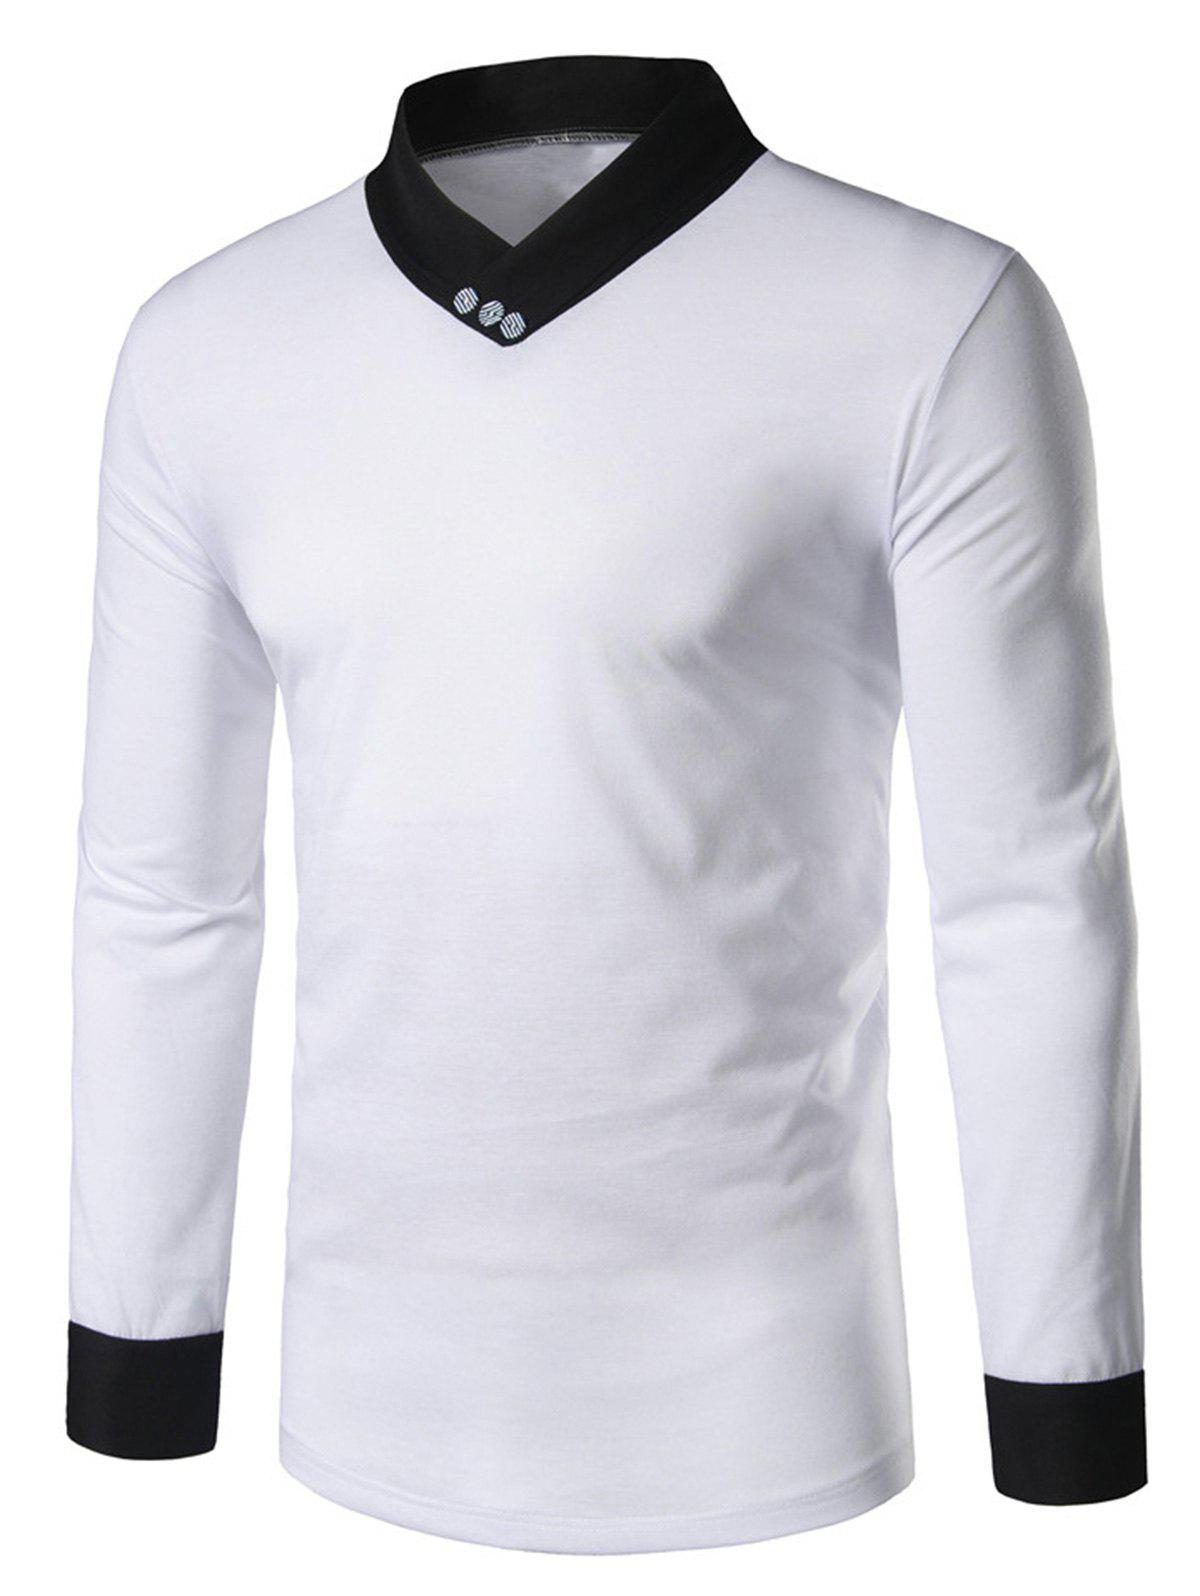 2018 shawl collar long sleeve panel t shirt white m in for Shawl collar t shirt